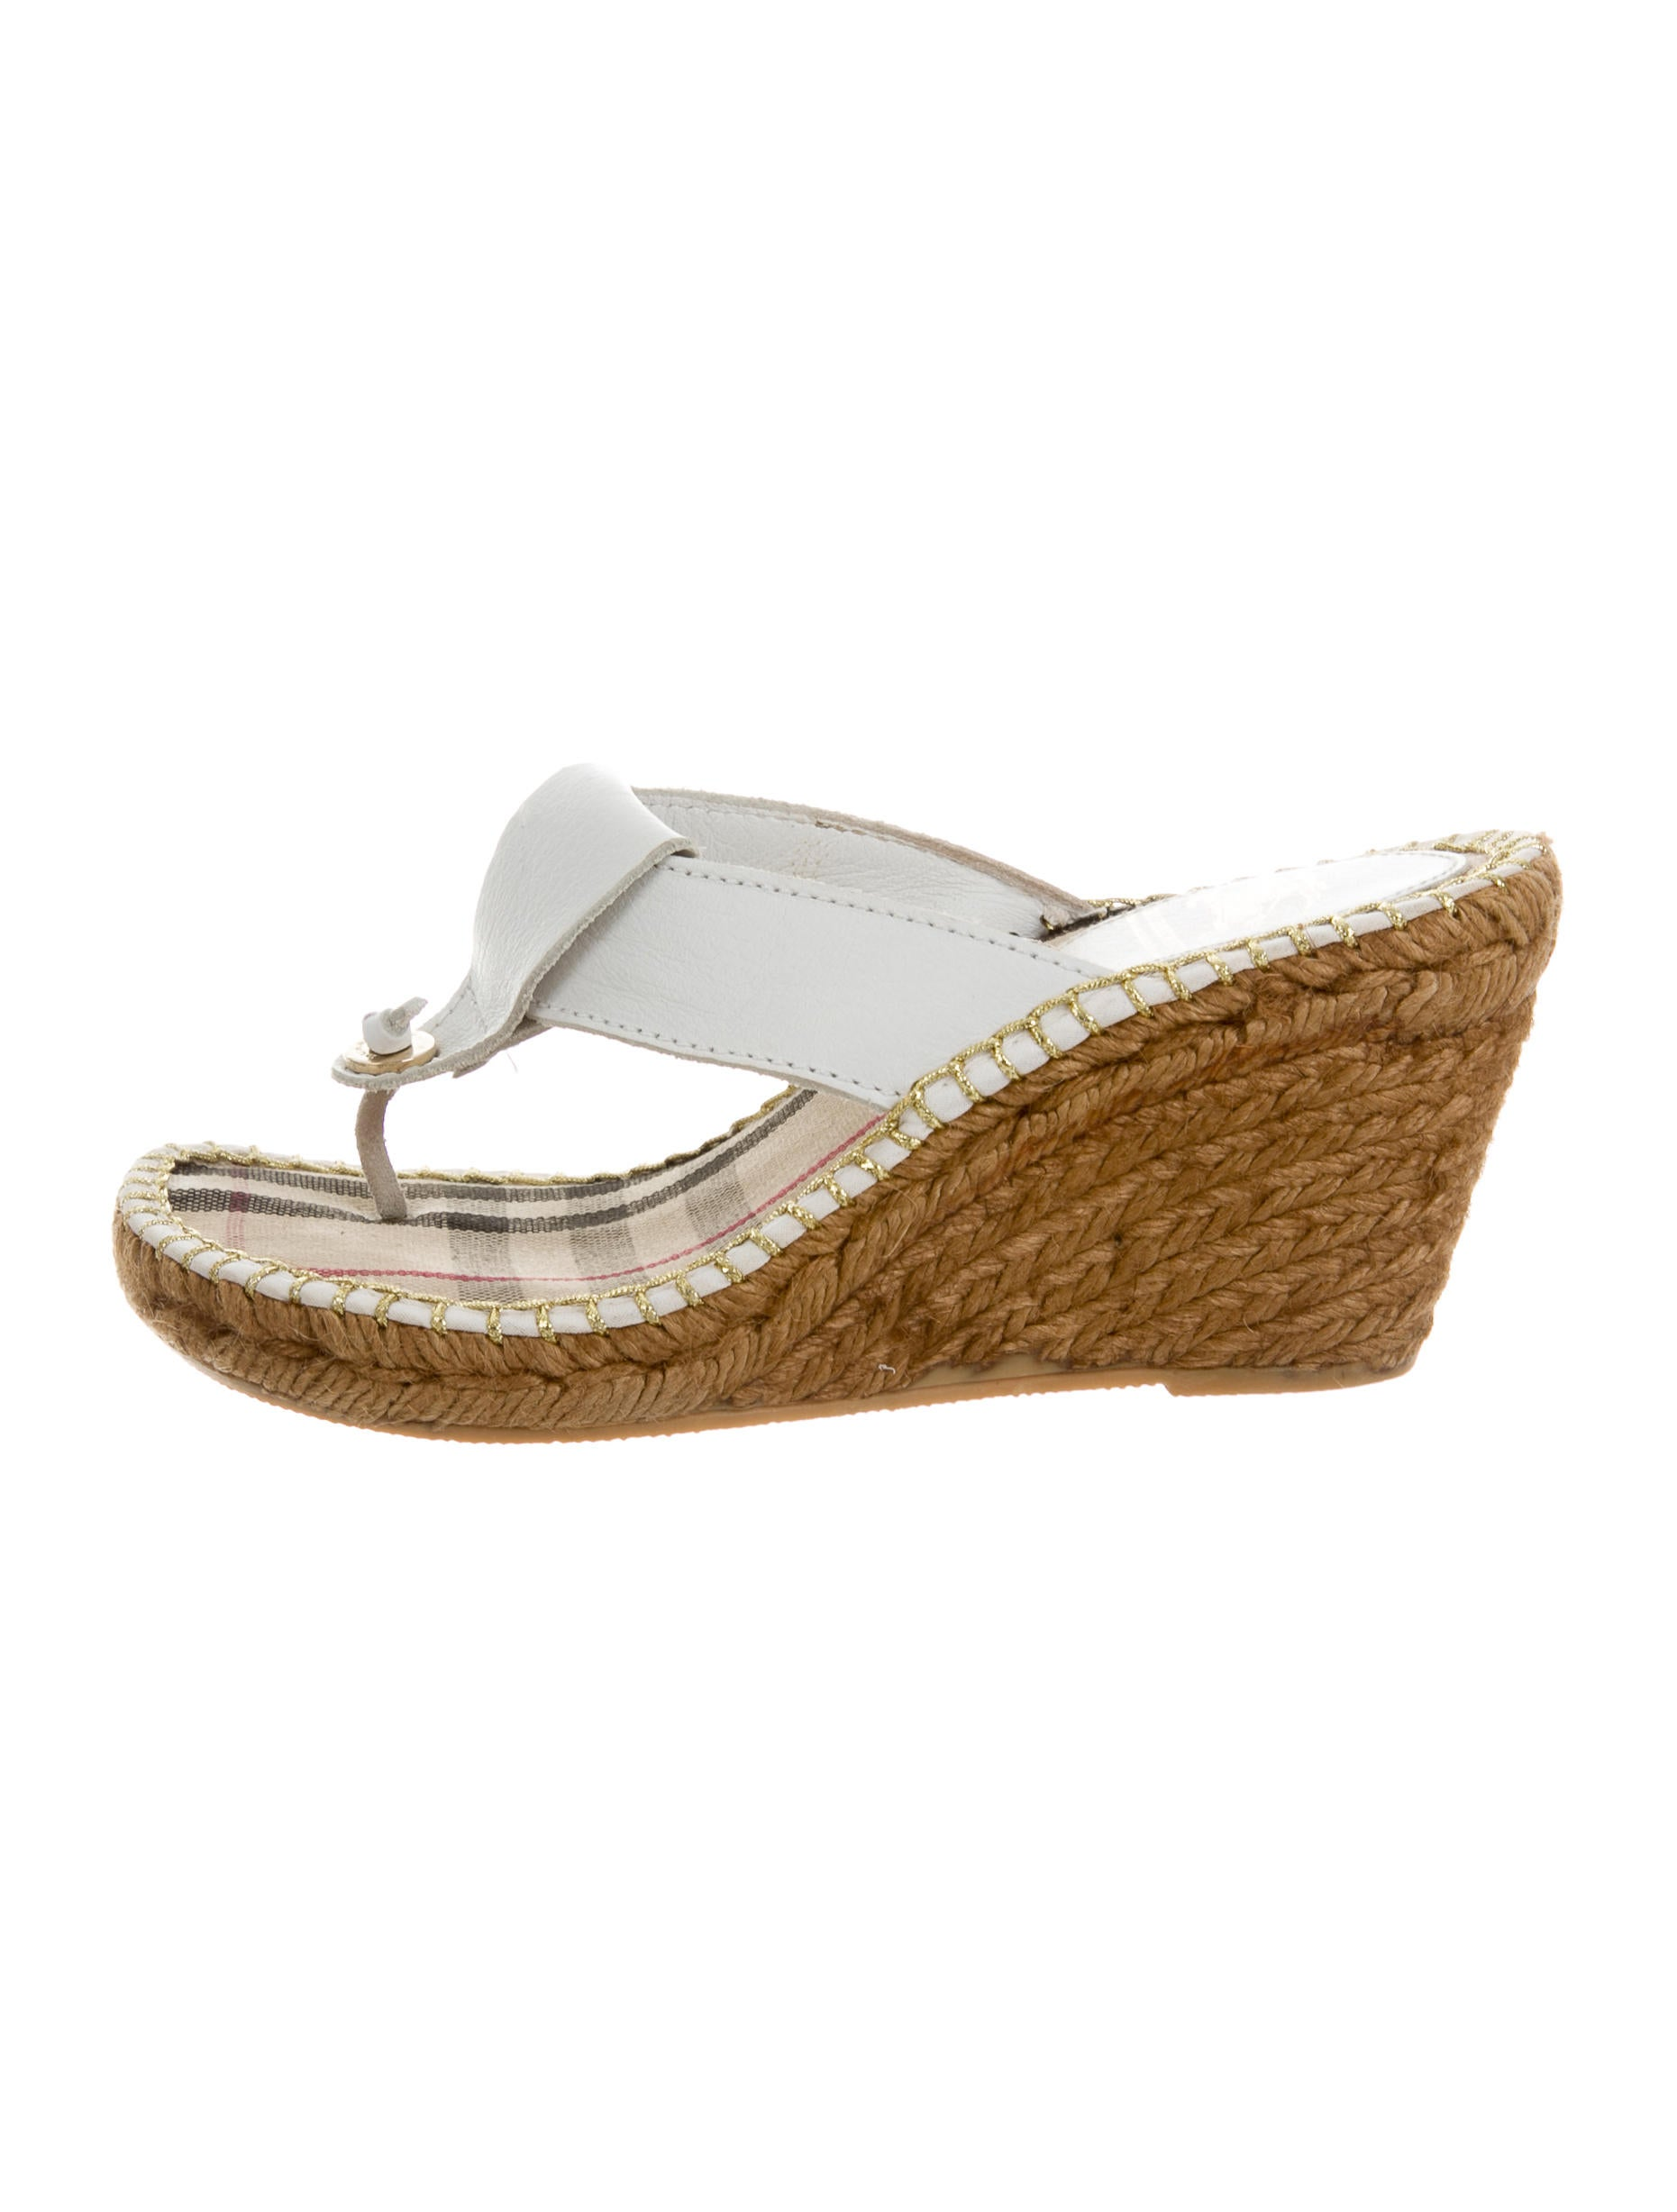 burberry leather slide wedges shoes bur56006 the